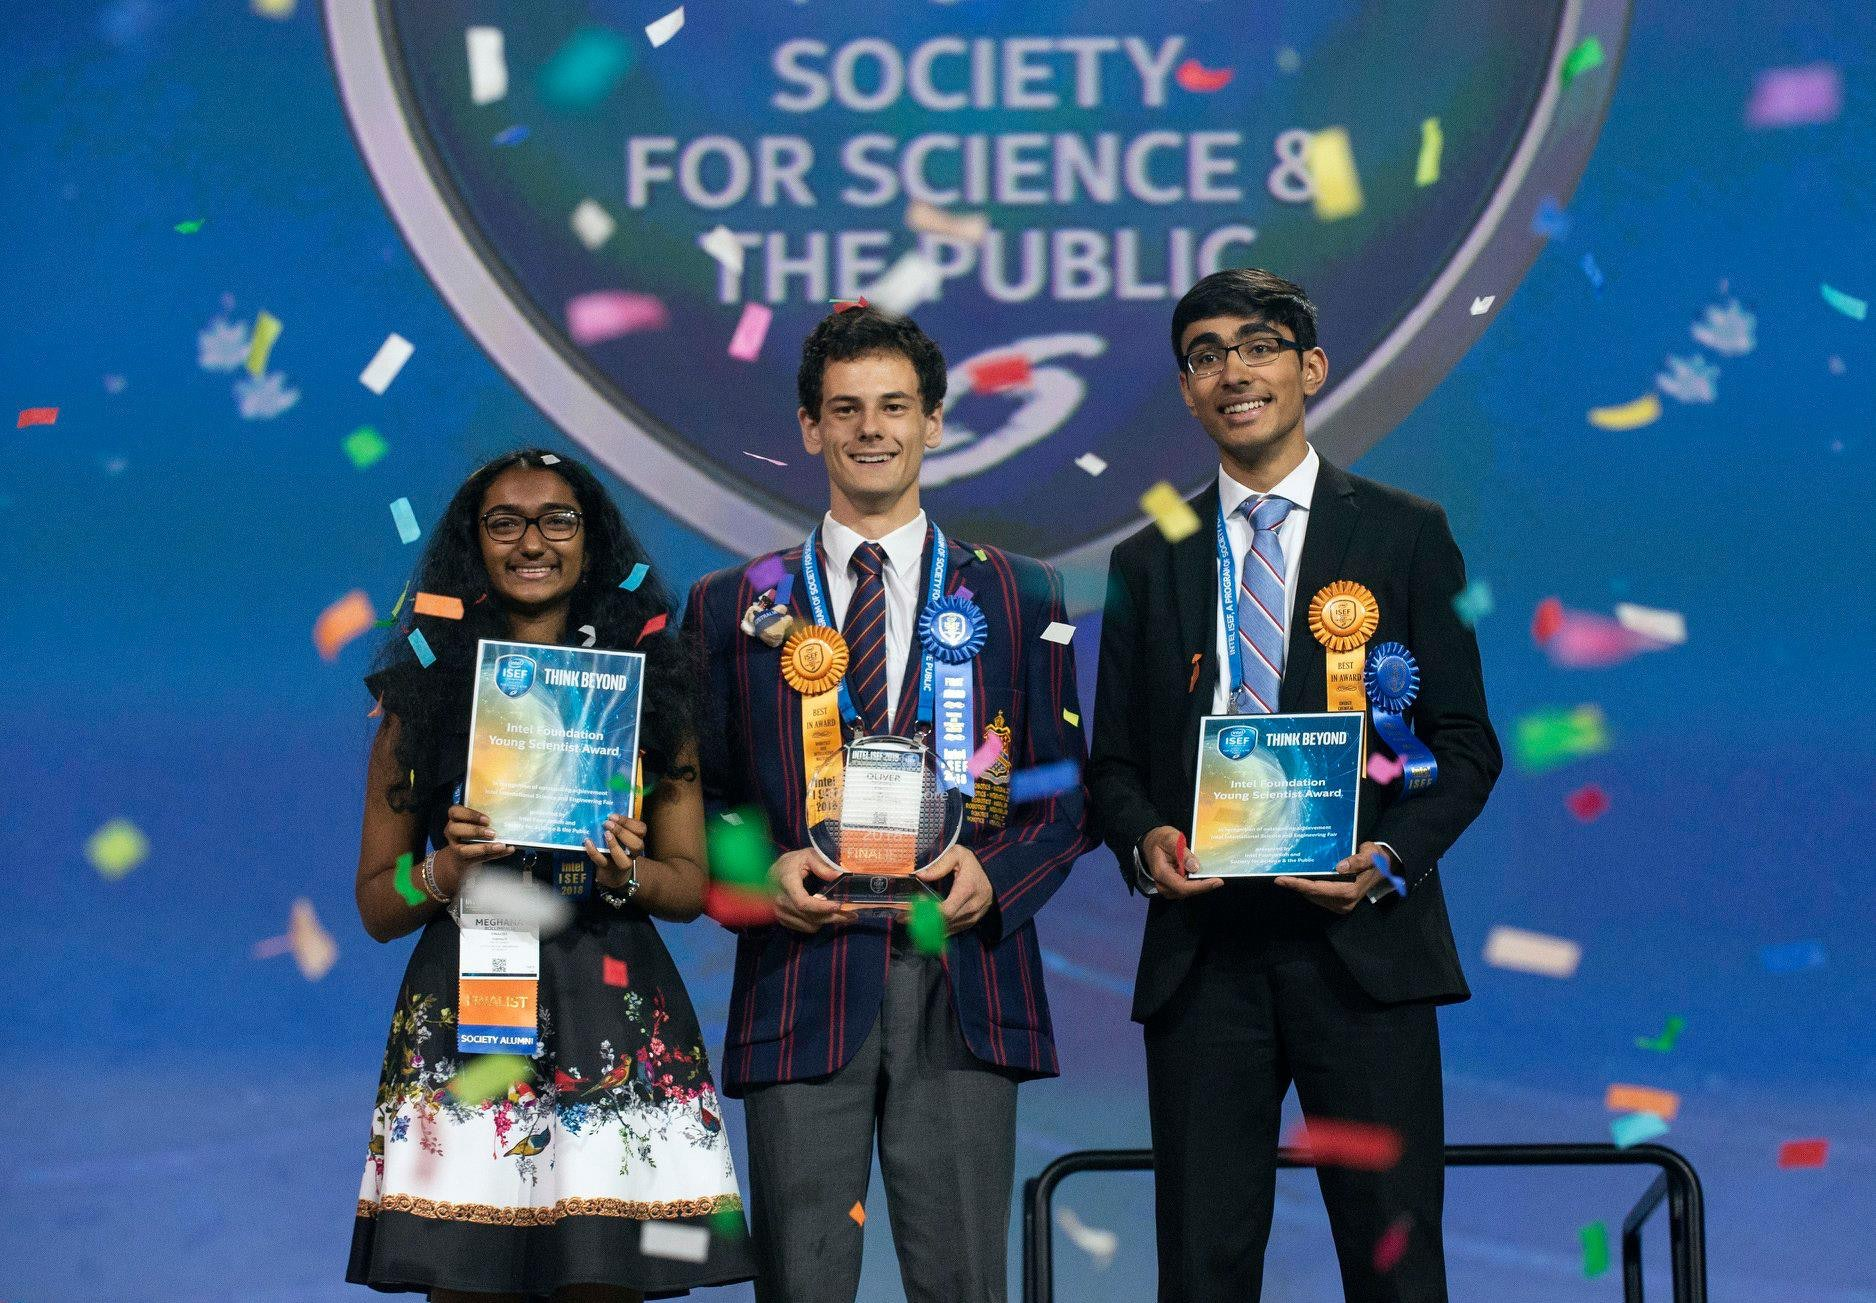 Meghana Bollimpalli won one of the top three prizes at the Intel International Science and Engineering Fair for presenting on the inexpensive supercapacitor project.